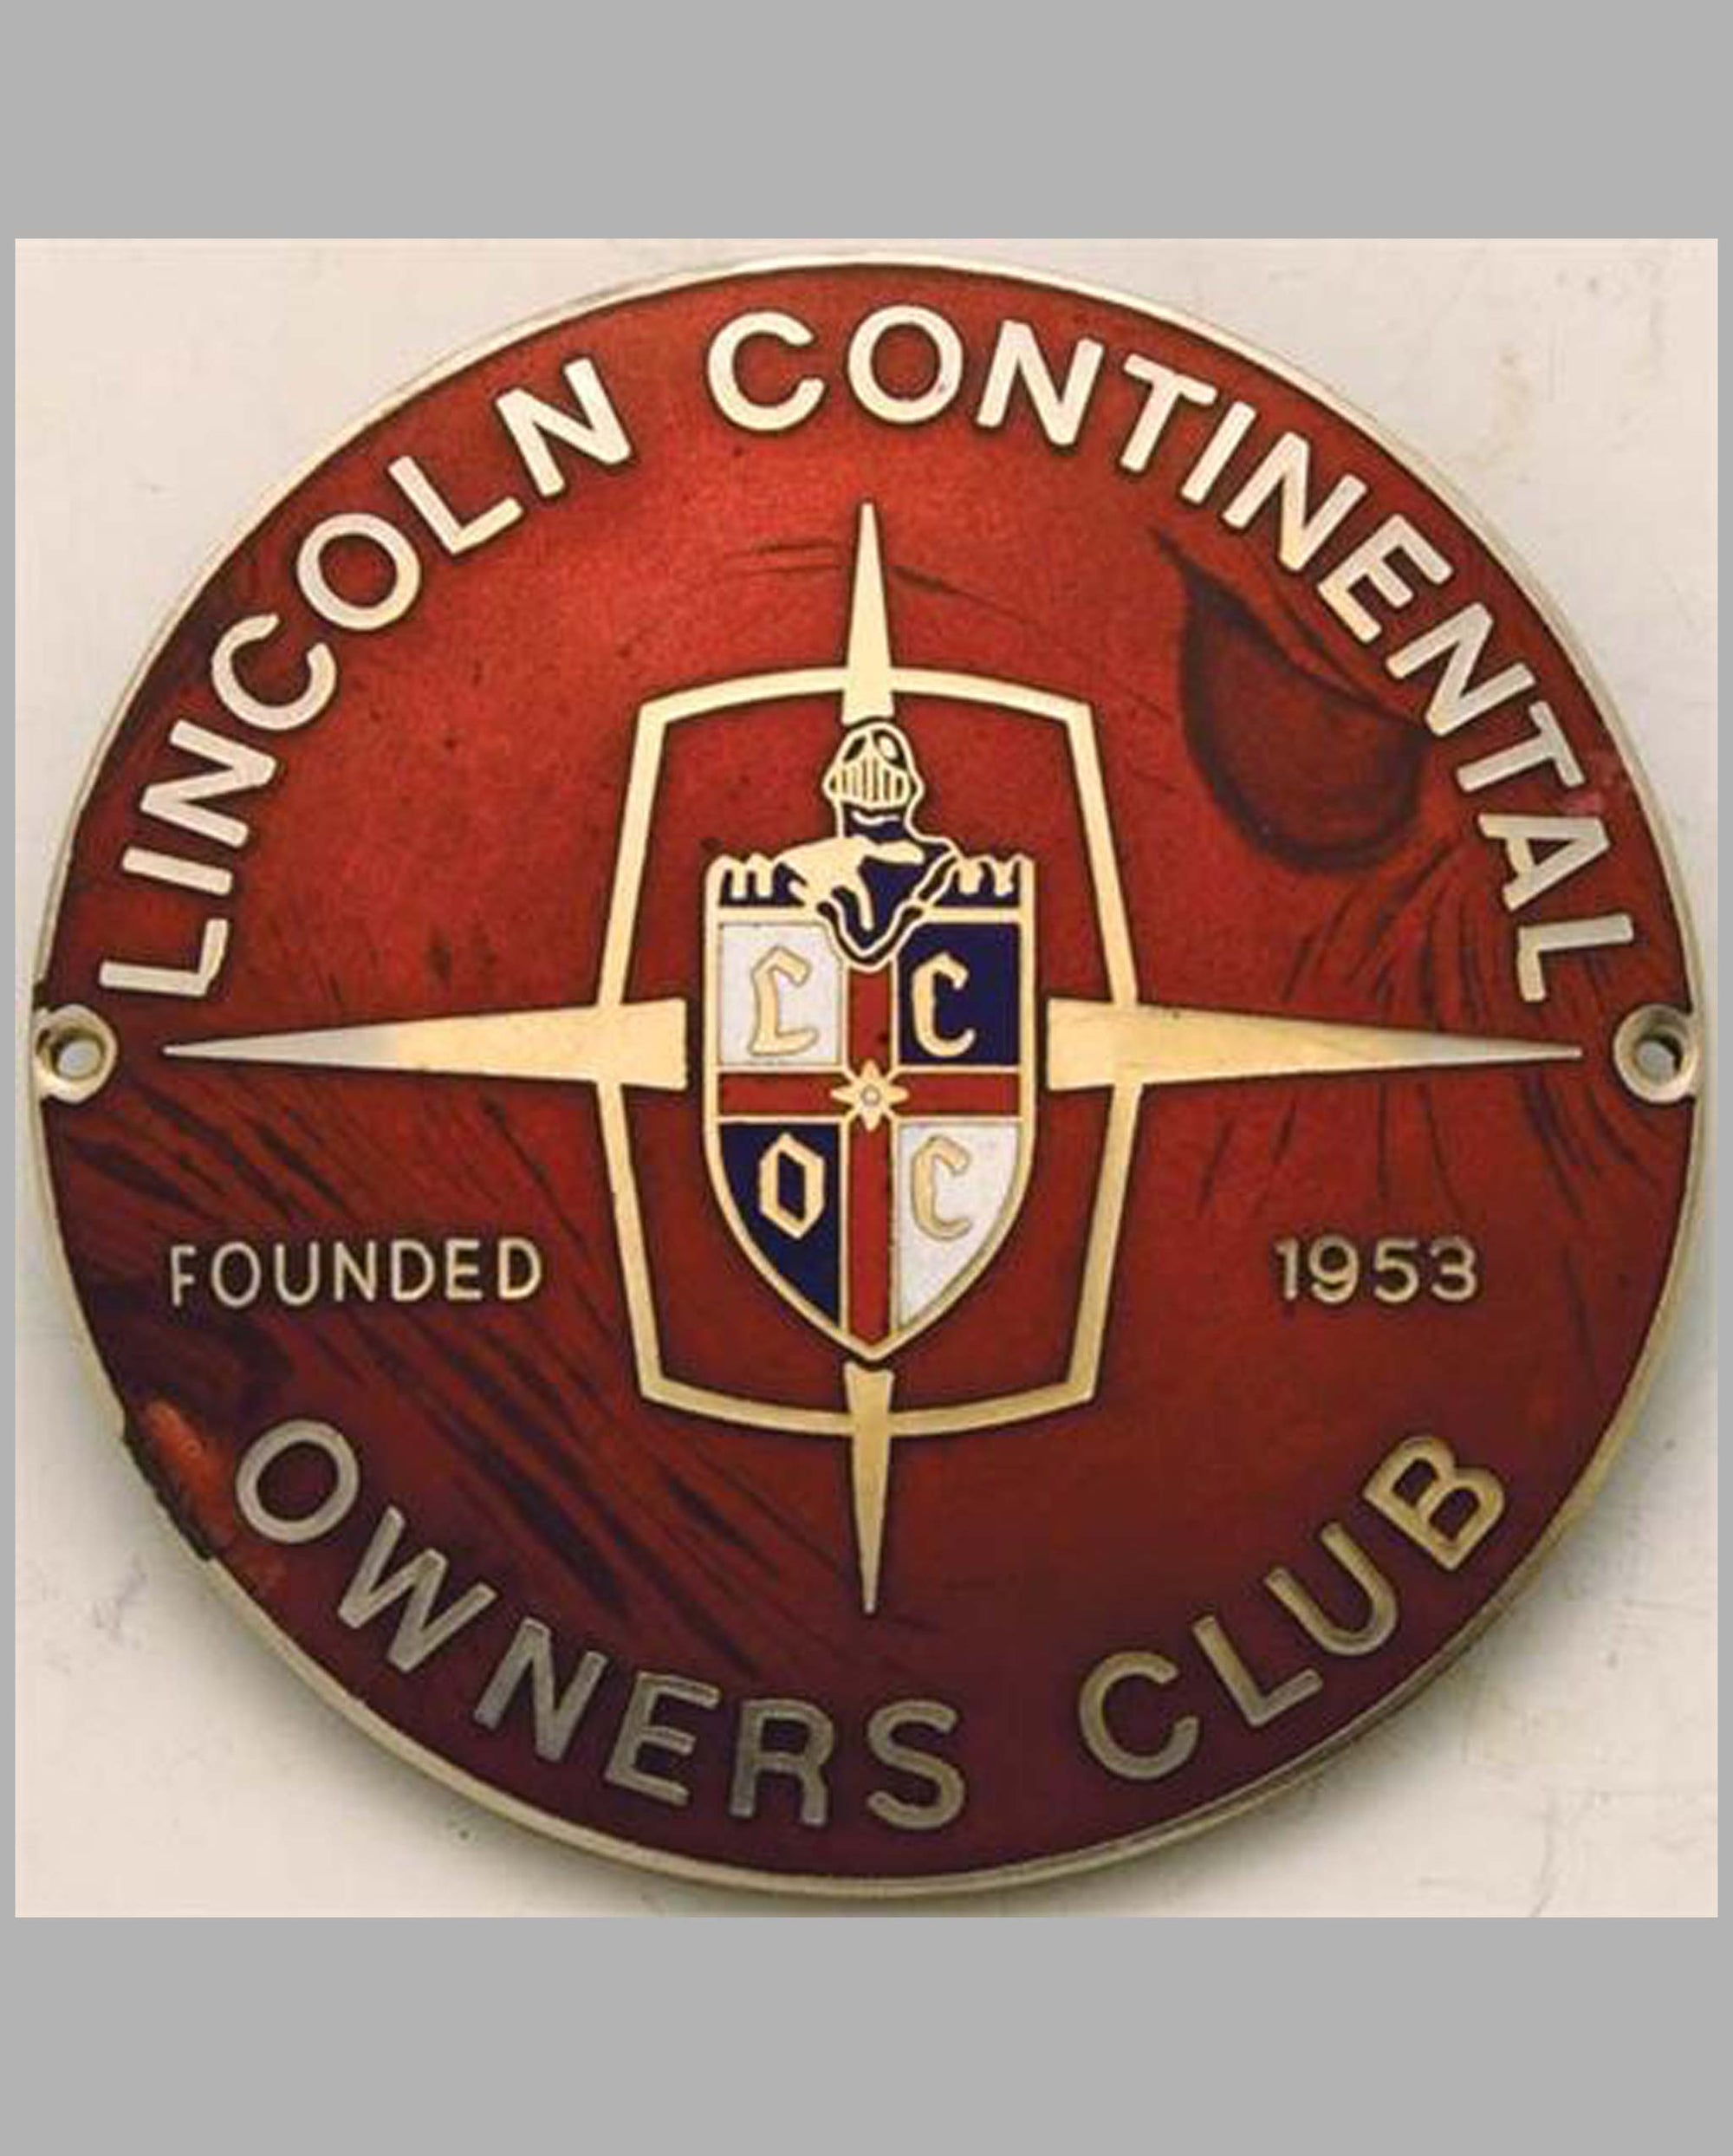 Lincoln Continental Owner's Club member's grill badge